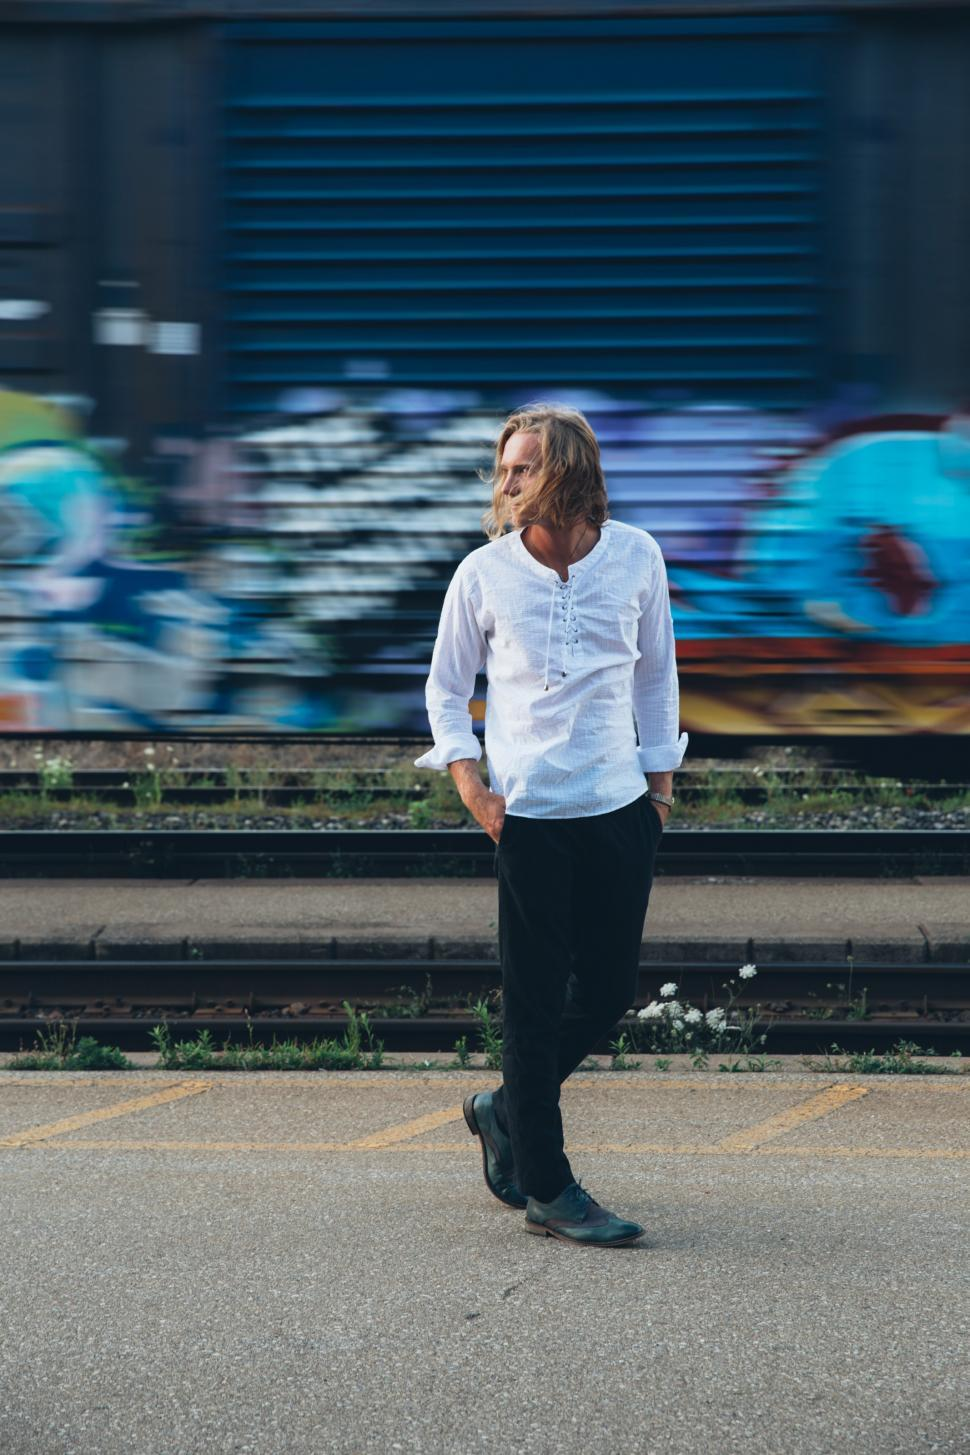 Download Free Stock HD Photo of A fashionable man walks by train tracks Online